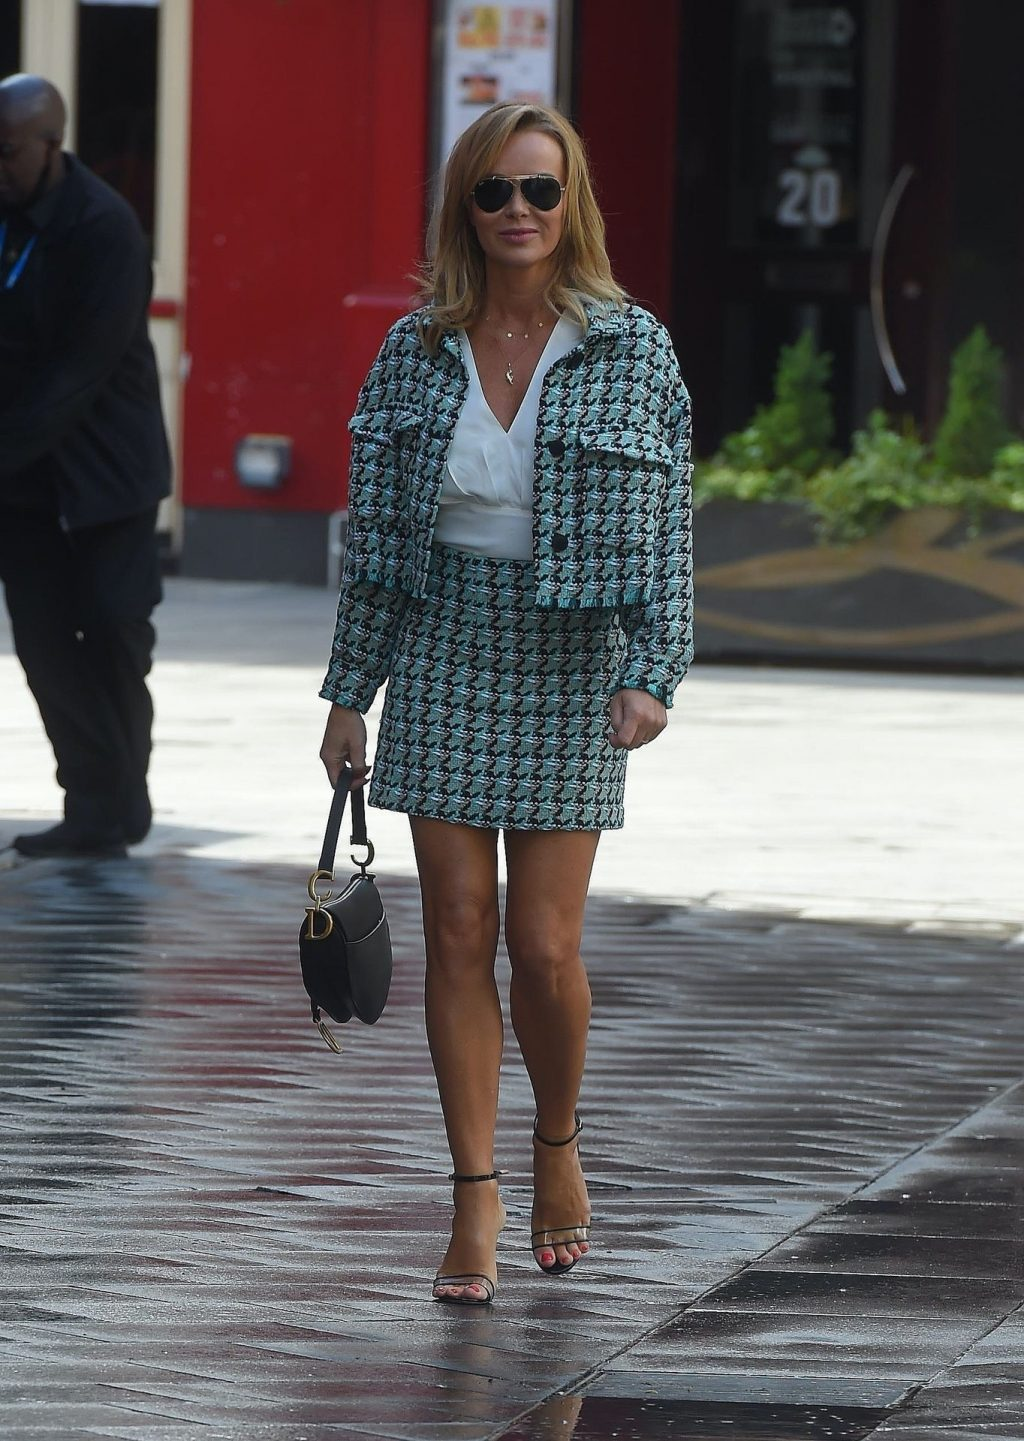 Amanda Holden Shows Off Her Sexy Legs in London (46 Photos)